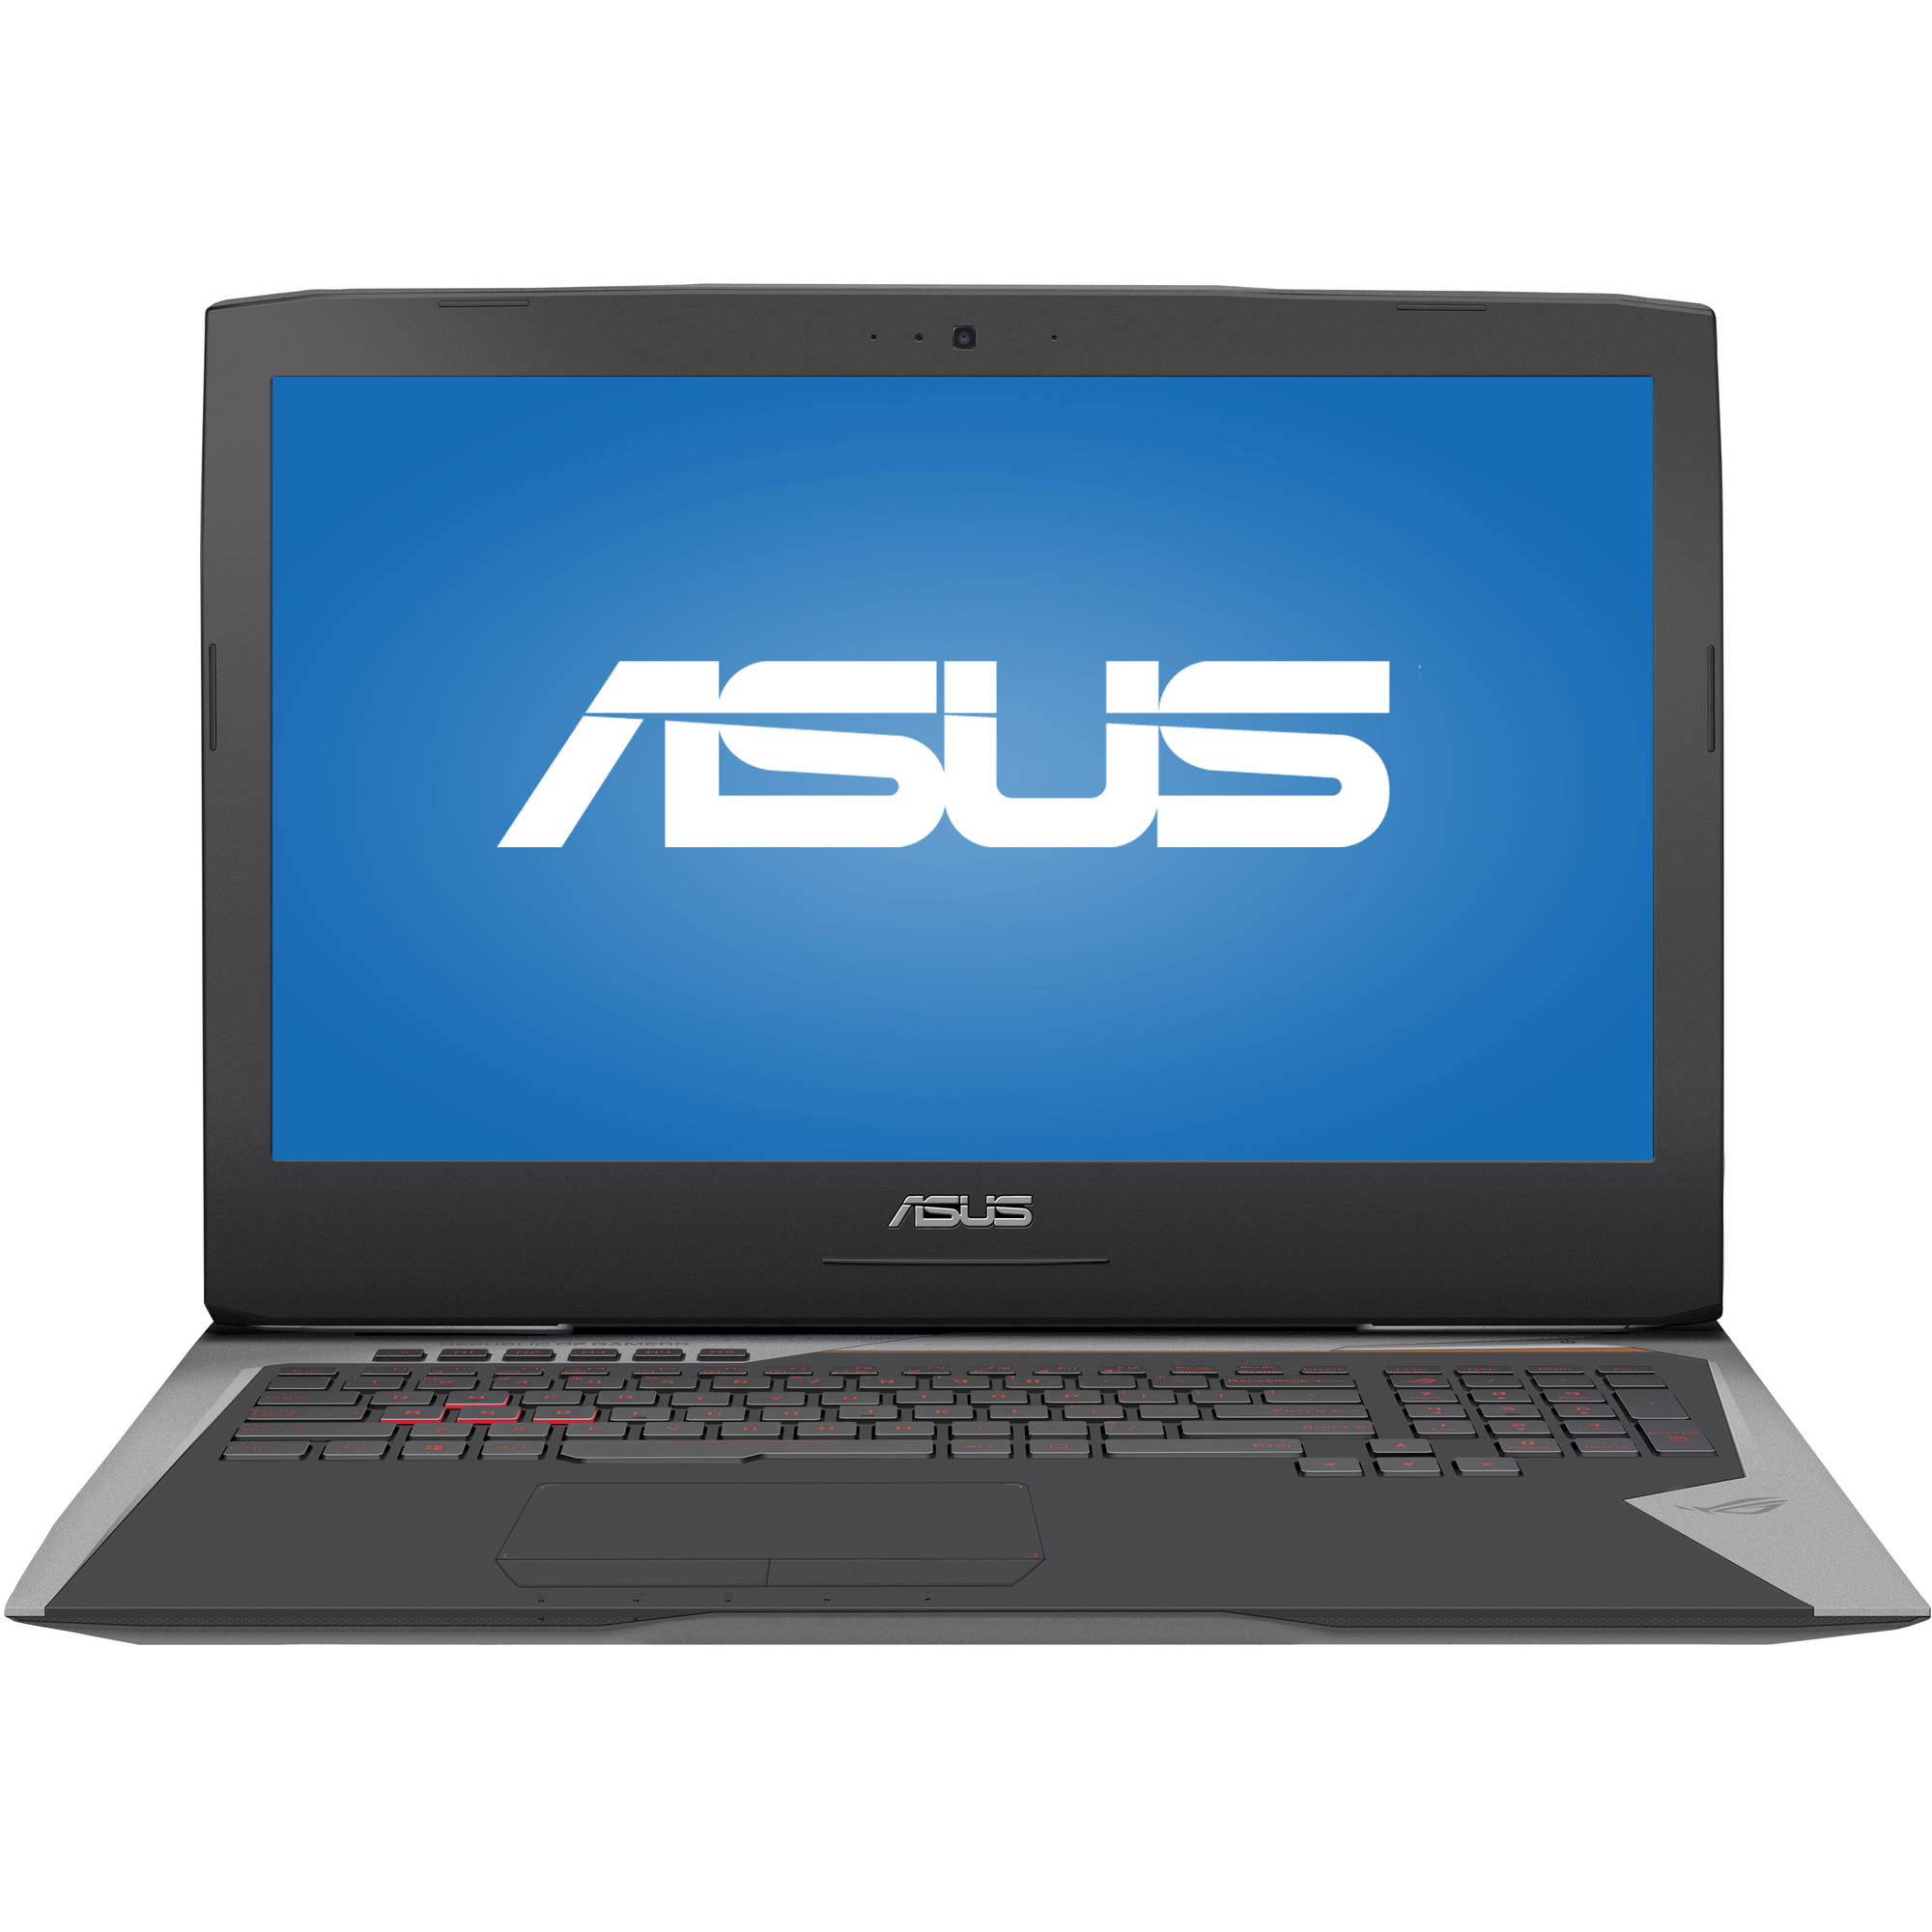 Asus G752VS-XB78K OC ED I7-6820 64GB 512GBSSD DVDRW 17.3IN W10P NO TOUCH